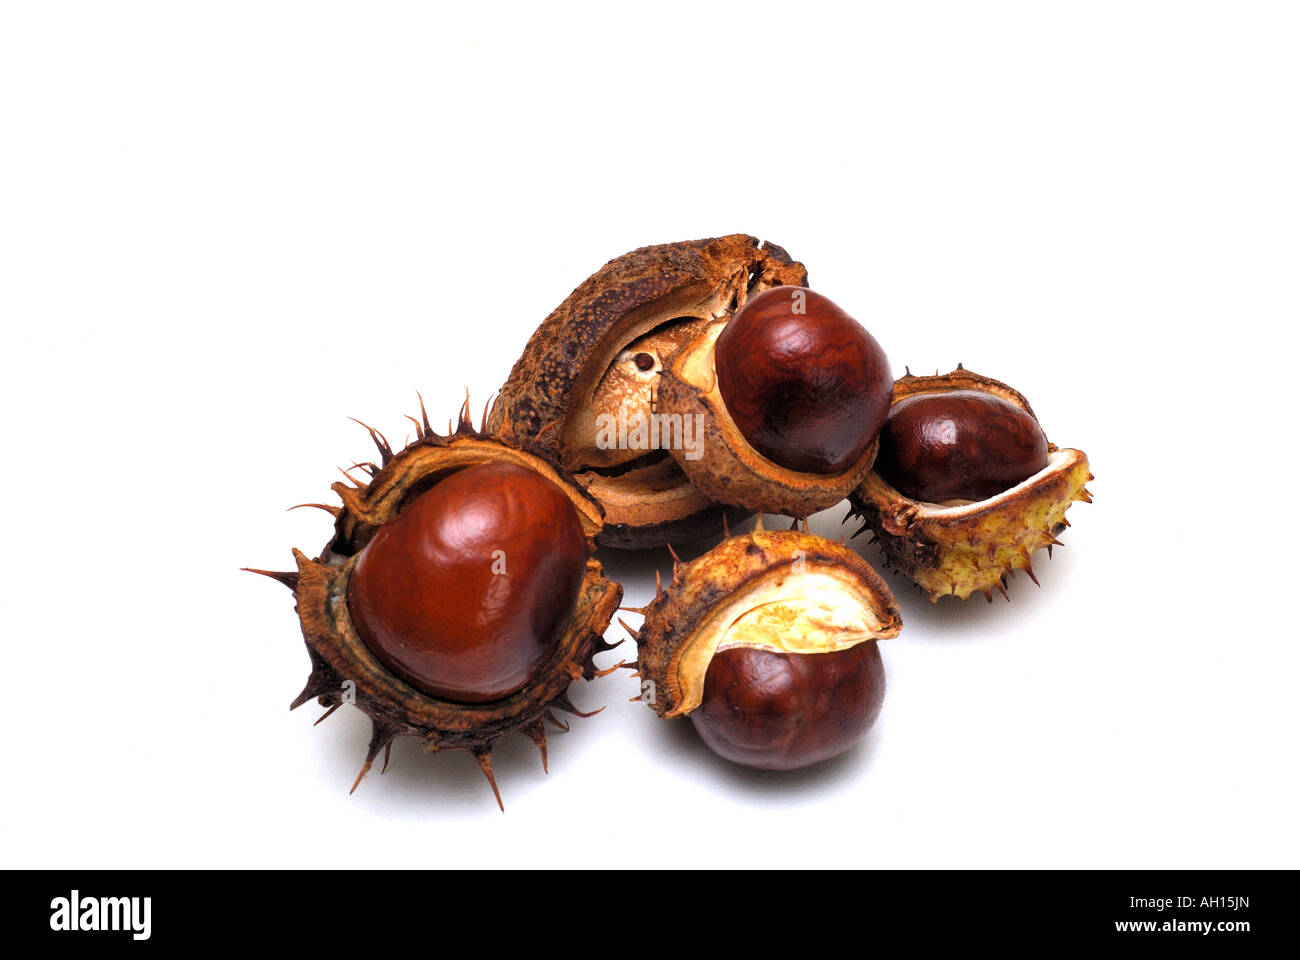 Horse chestnuts on a white background The horse chestnut s scientific name is Aesculus hippocastanum - Stock Image